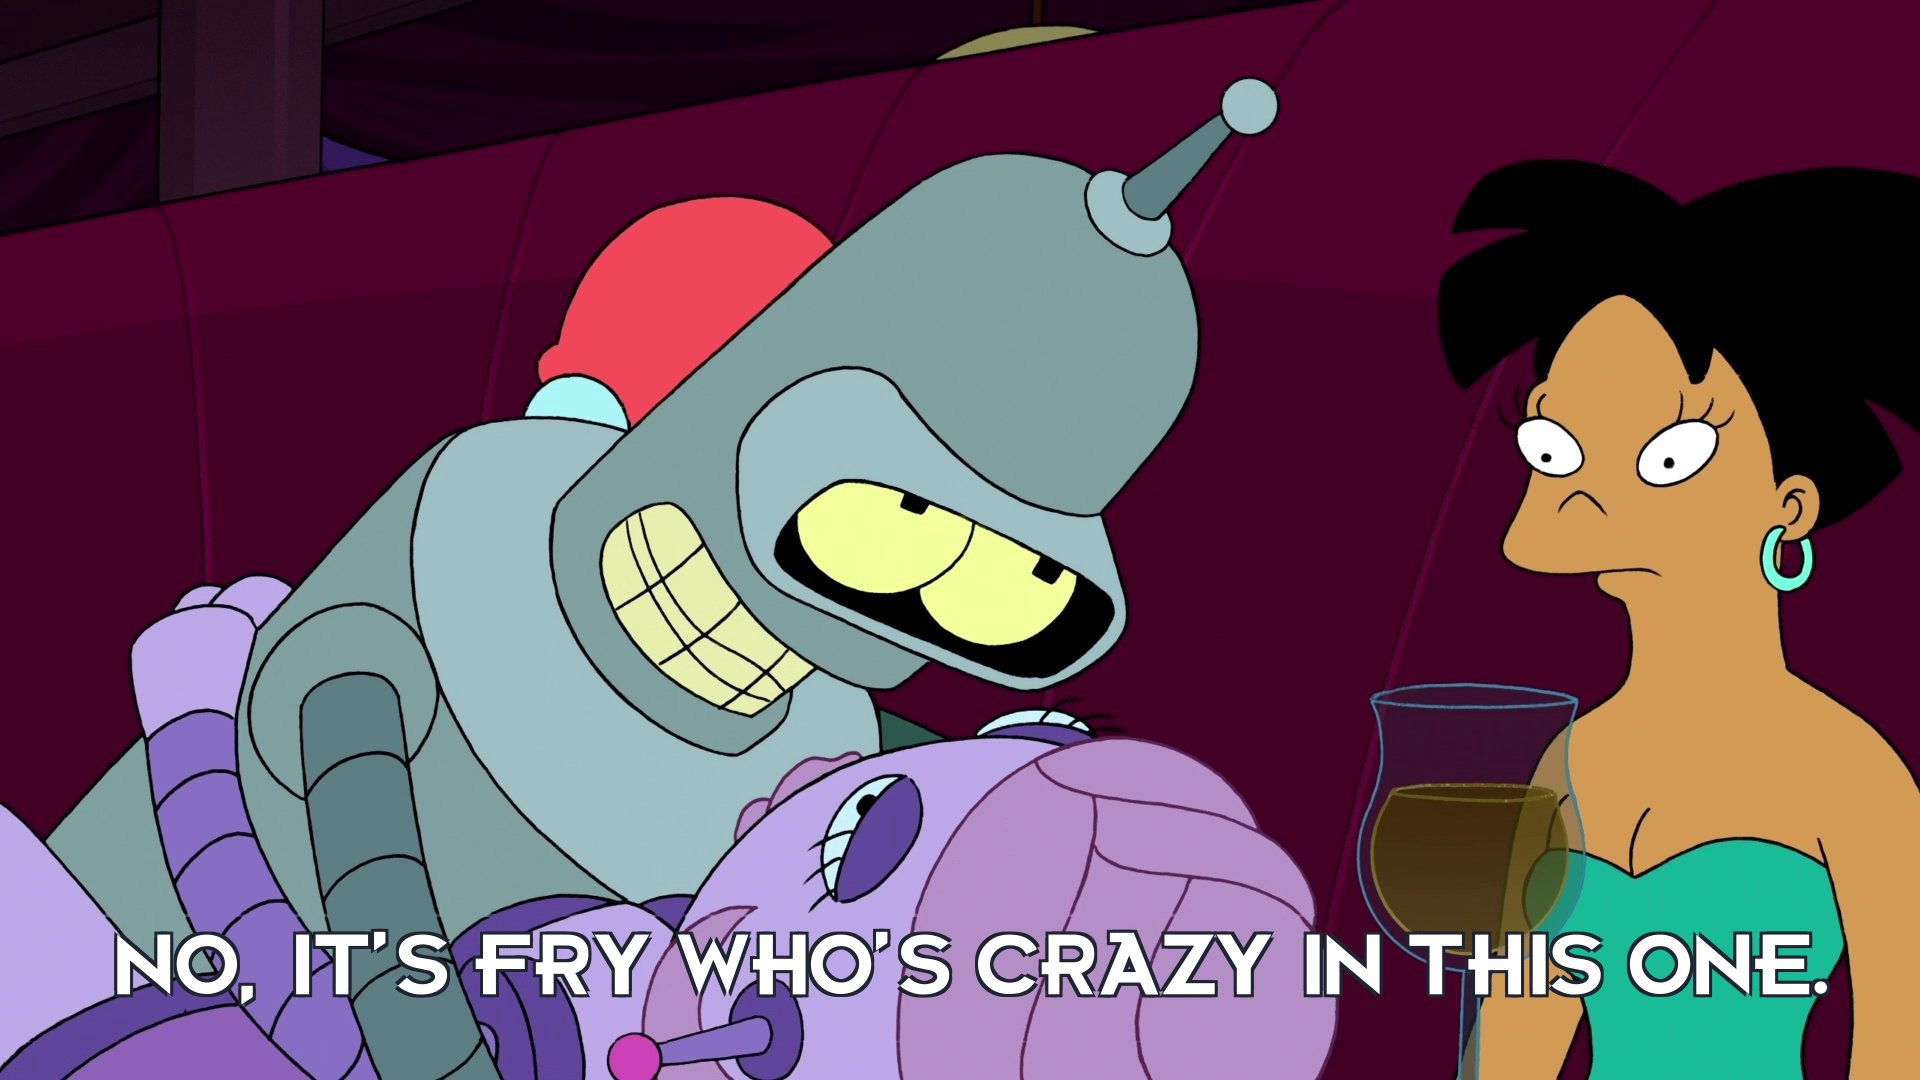 Bender Bending Rodriguez: No, it's Fry who's crazy in this one.